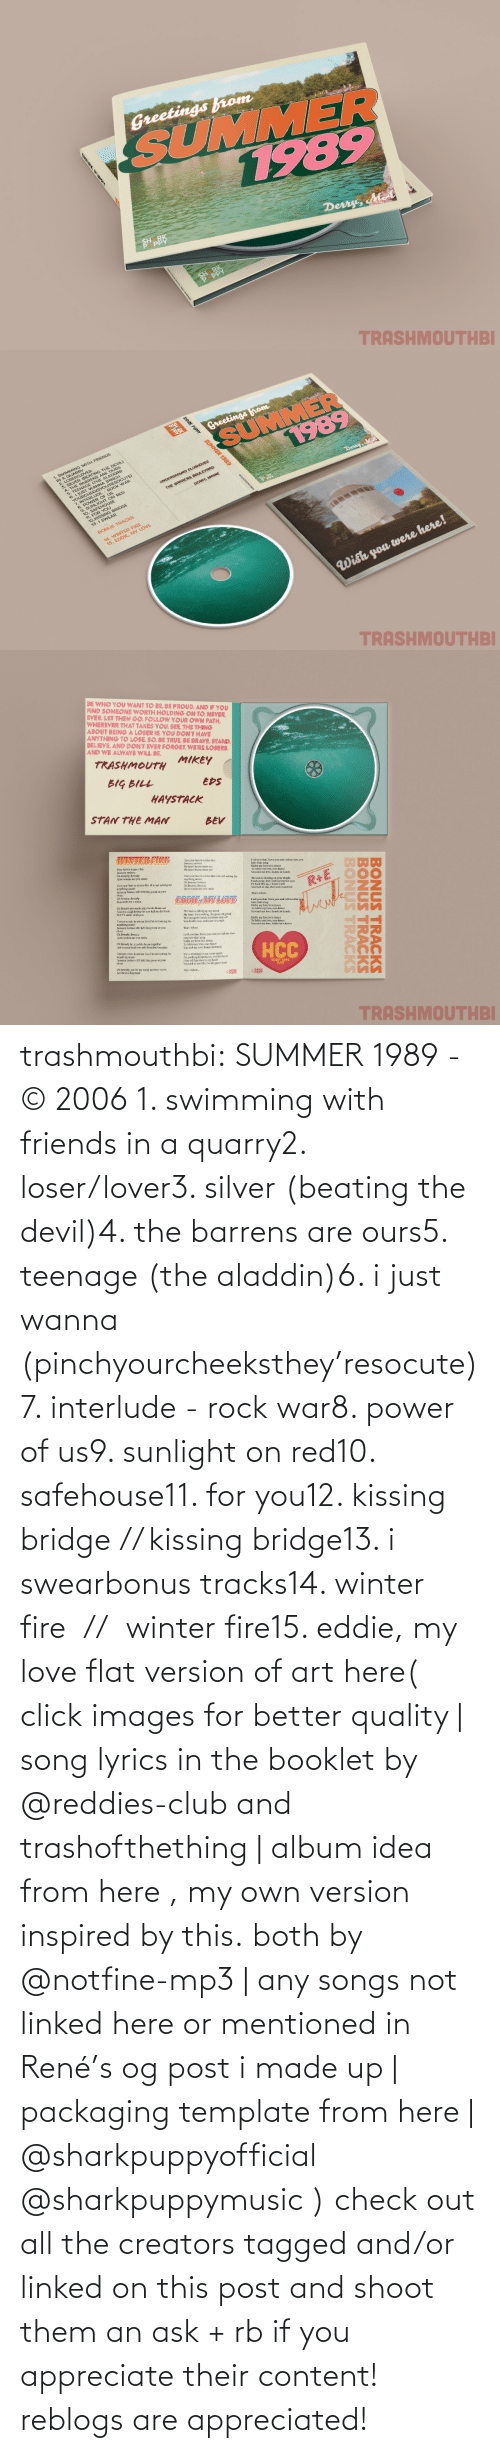 Longer: trashmouthbi: SUMMER 1989 - © 2006 1. swimming with friends in a quarry2. loser/lover3. silver (beating the devil)4. the barrens are ours5. teenage (the aladdin)6. i just wanna (pinchyourcheeksthey'resocute)7. interlude - rock war8. power of us9. sunlight on red10. safehouse11. for you12. kissing bridge // kissing bridge13. i swearbonus tracks14. winter fire  //  winter fire15. eddie, my love flat version of art here( click images for better quality | song lyrics in the booklet by @reddies-club​ and trashofthething | album idea from here , my own version inspired by this. both by @notfine-mp3​ | any songs not linked here or mentioned in René's og post i made up | packaging template from here | @sharkpuppyofficial​ @sharkpuppymusic​ ) check out all the creators tagged and/or linked on this post and shoot them an ask + rb if you appreciate their content! reblogs are appreciated!